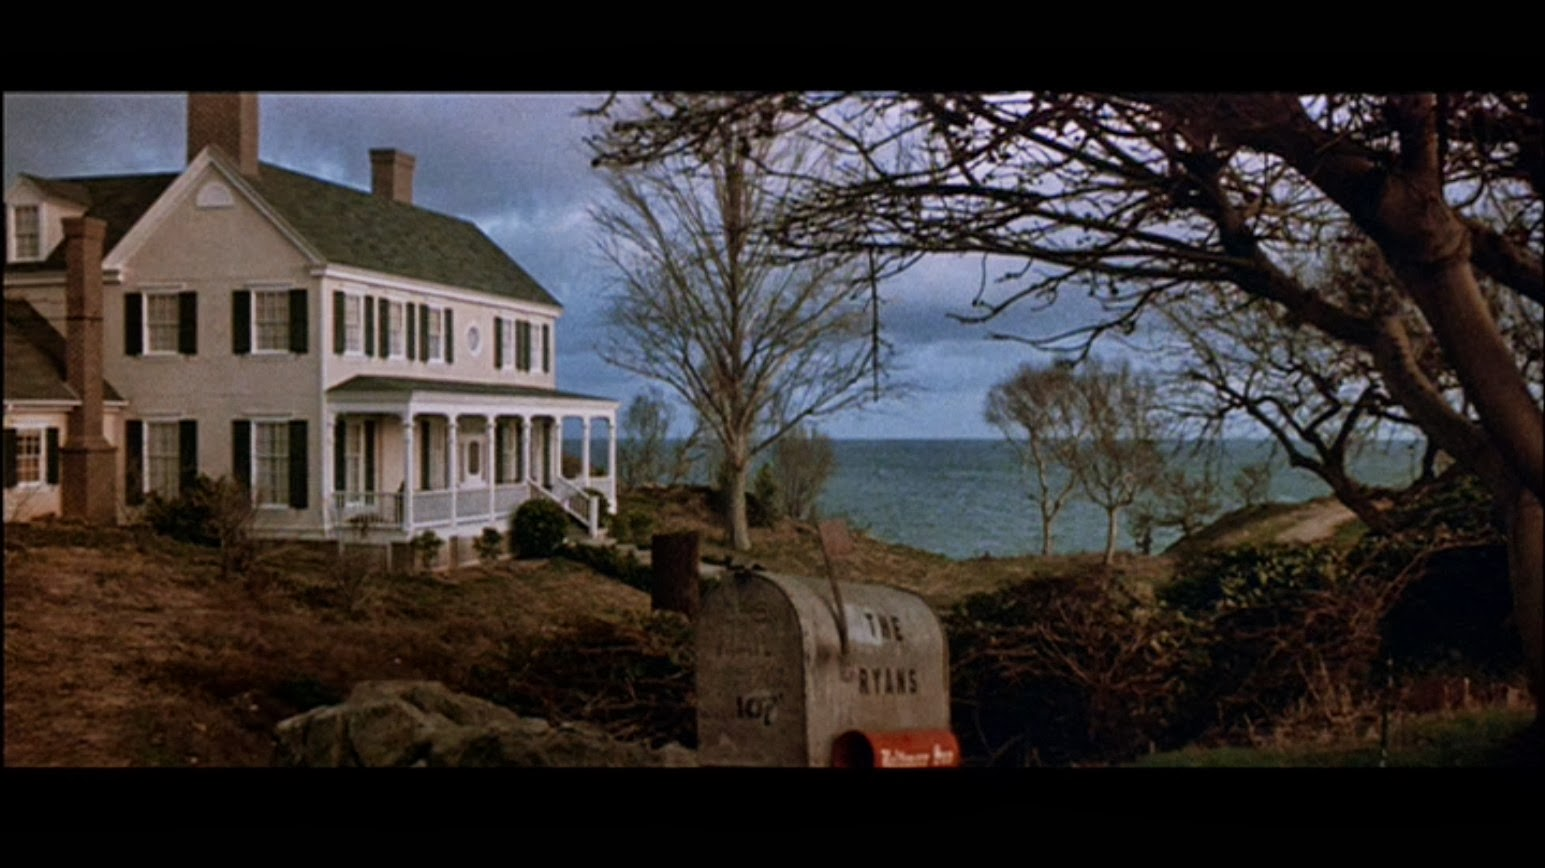 House in Patriot Games Movie